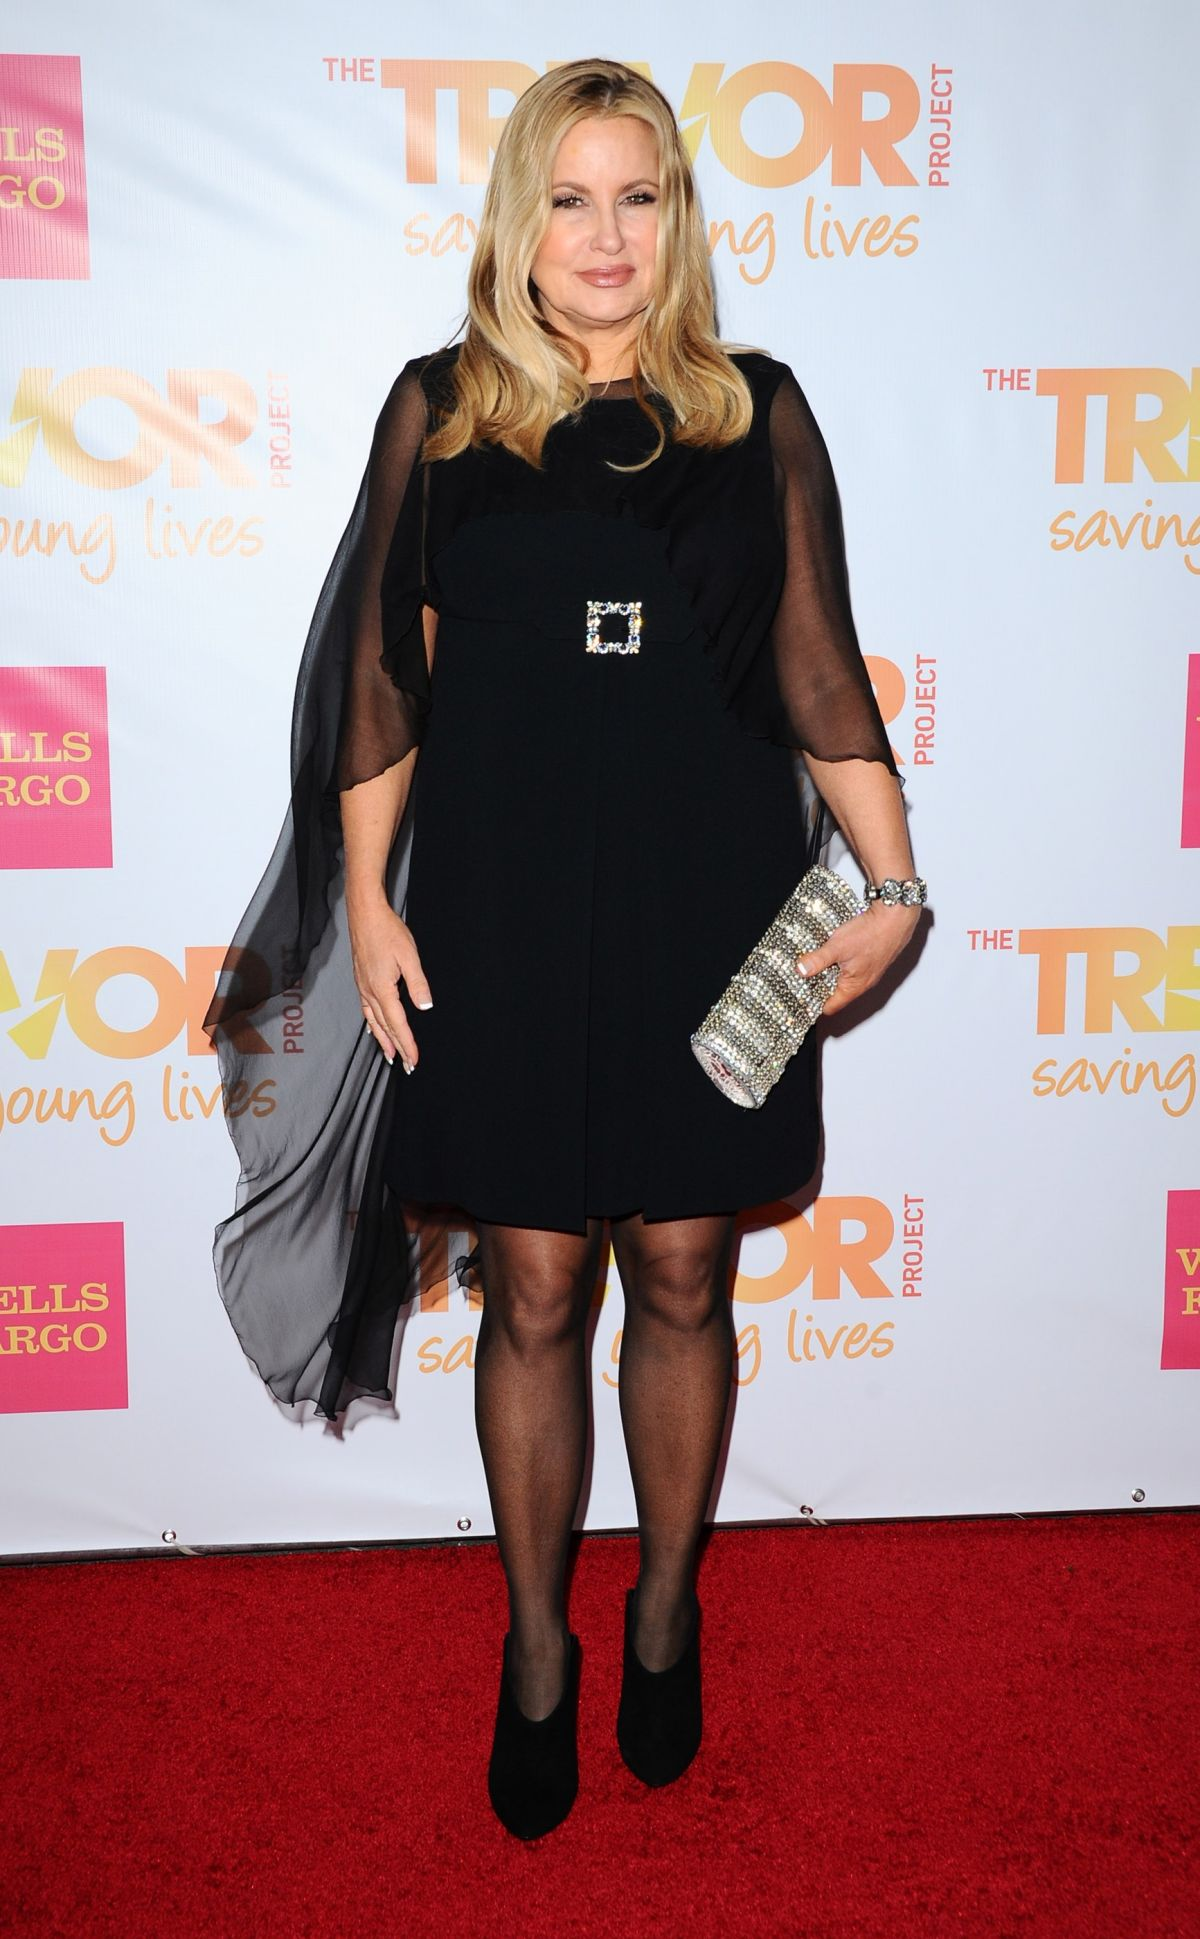 JENNIFER COOLIDGEat The Trevor Project: TrevorLive Event in Los Angeles